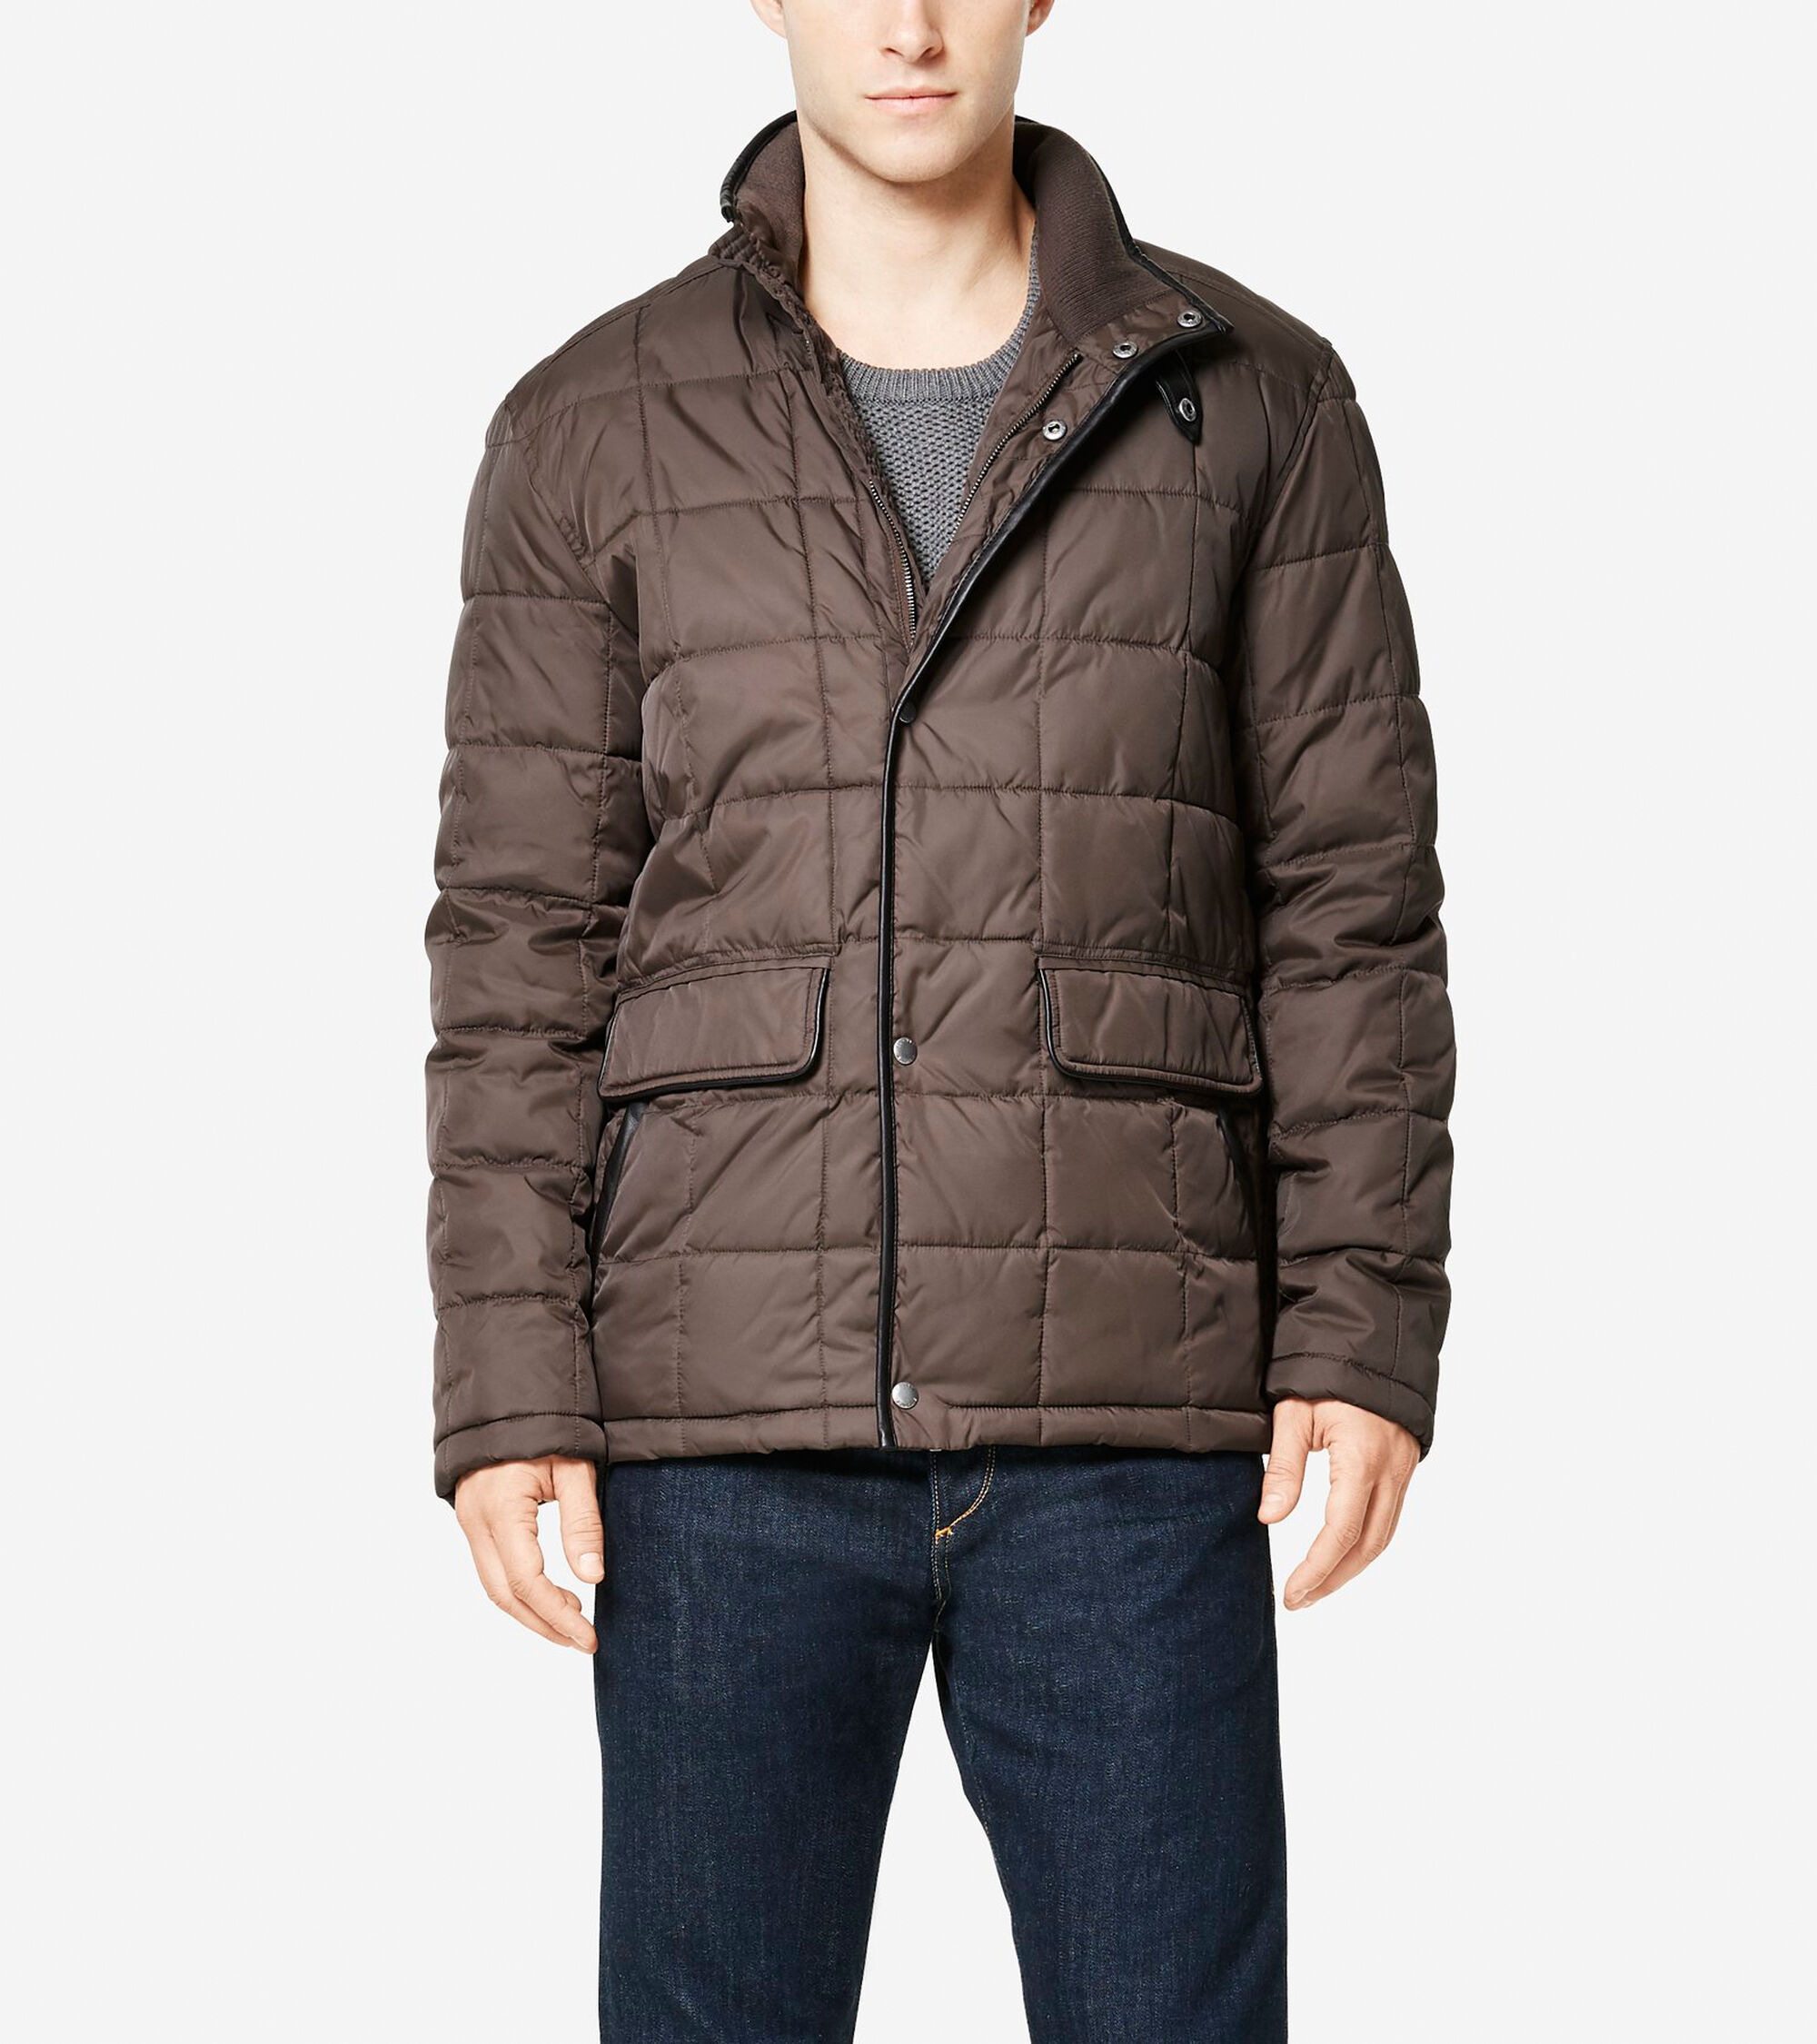 asp discount jacket mens quilt share buy tshirts armani off f quilted